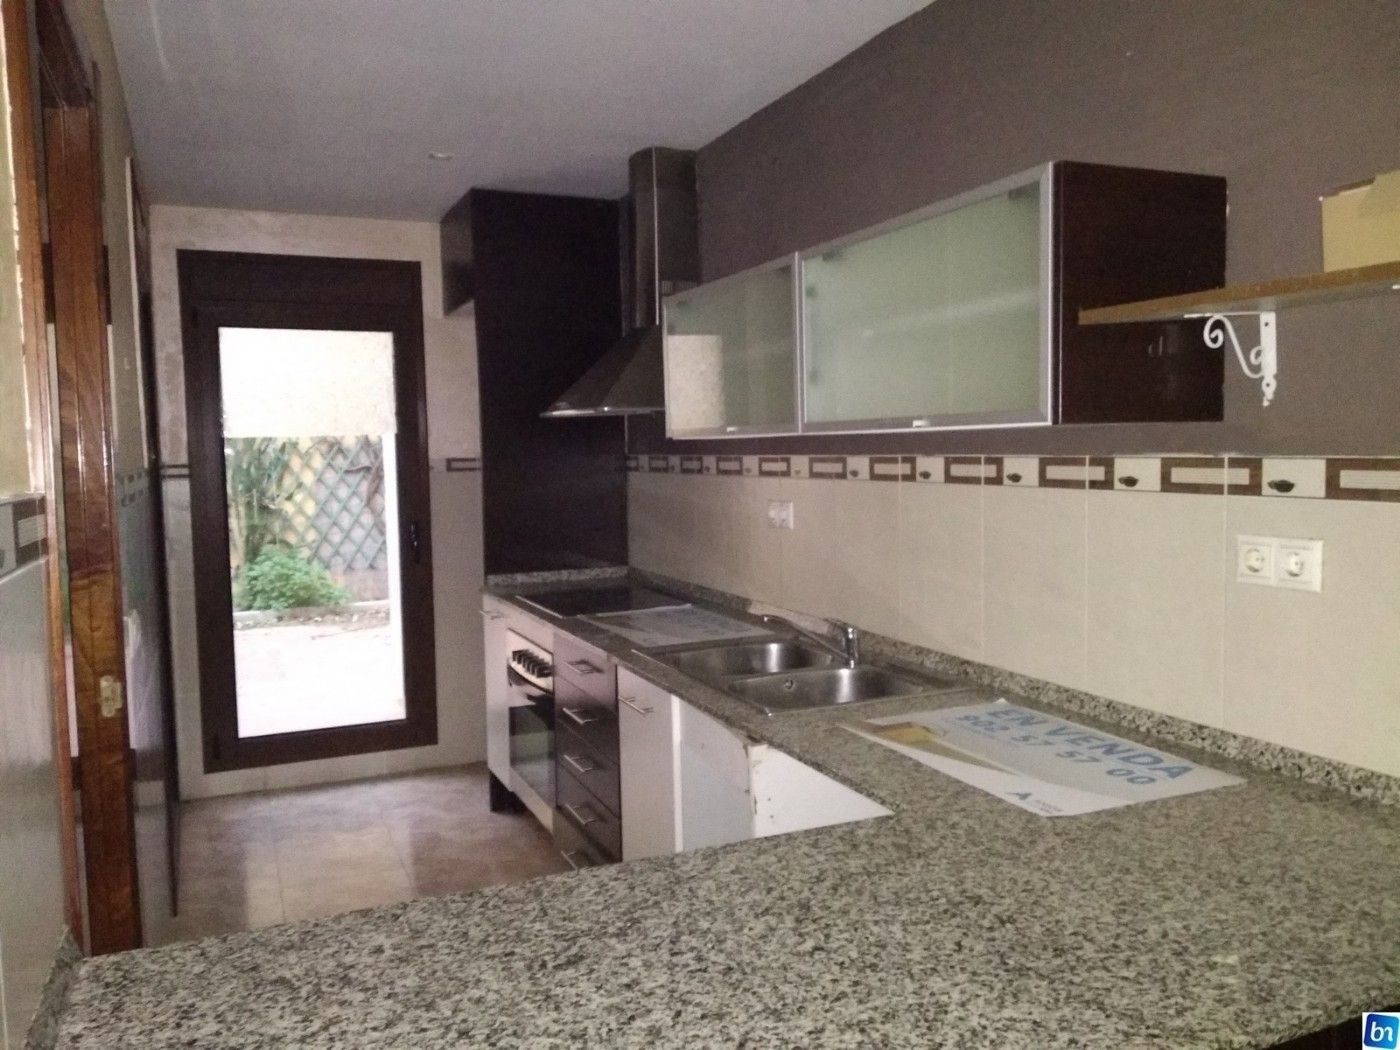 Flat in Carrer santa anna, 56. Oportunidad!!